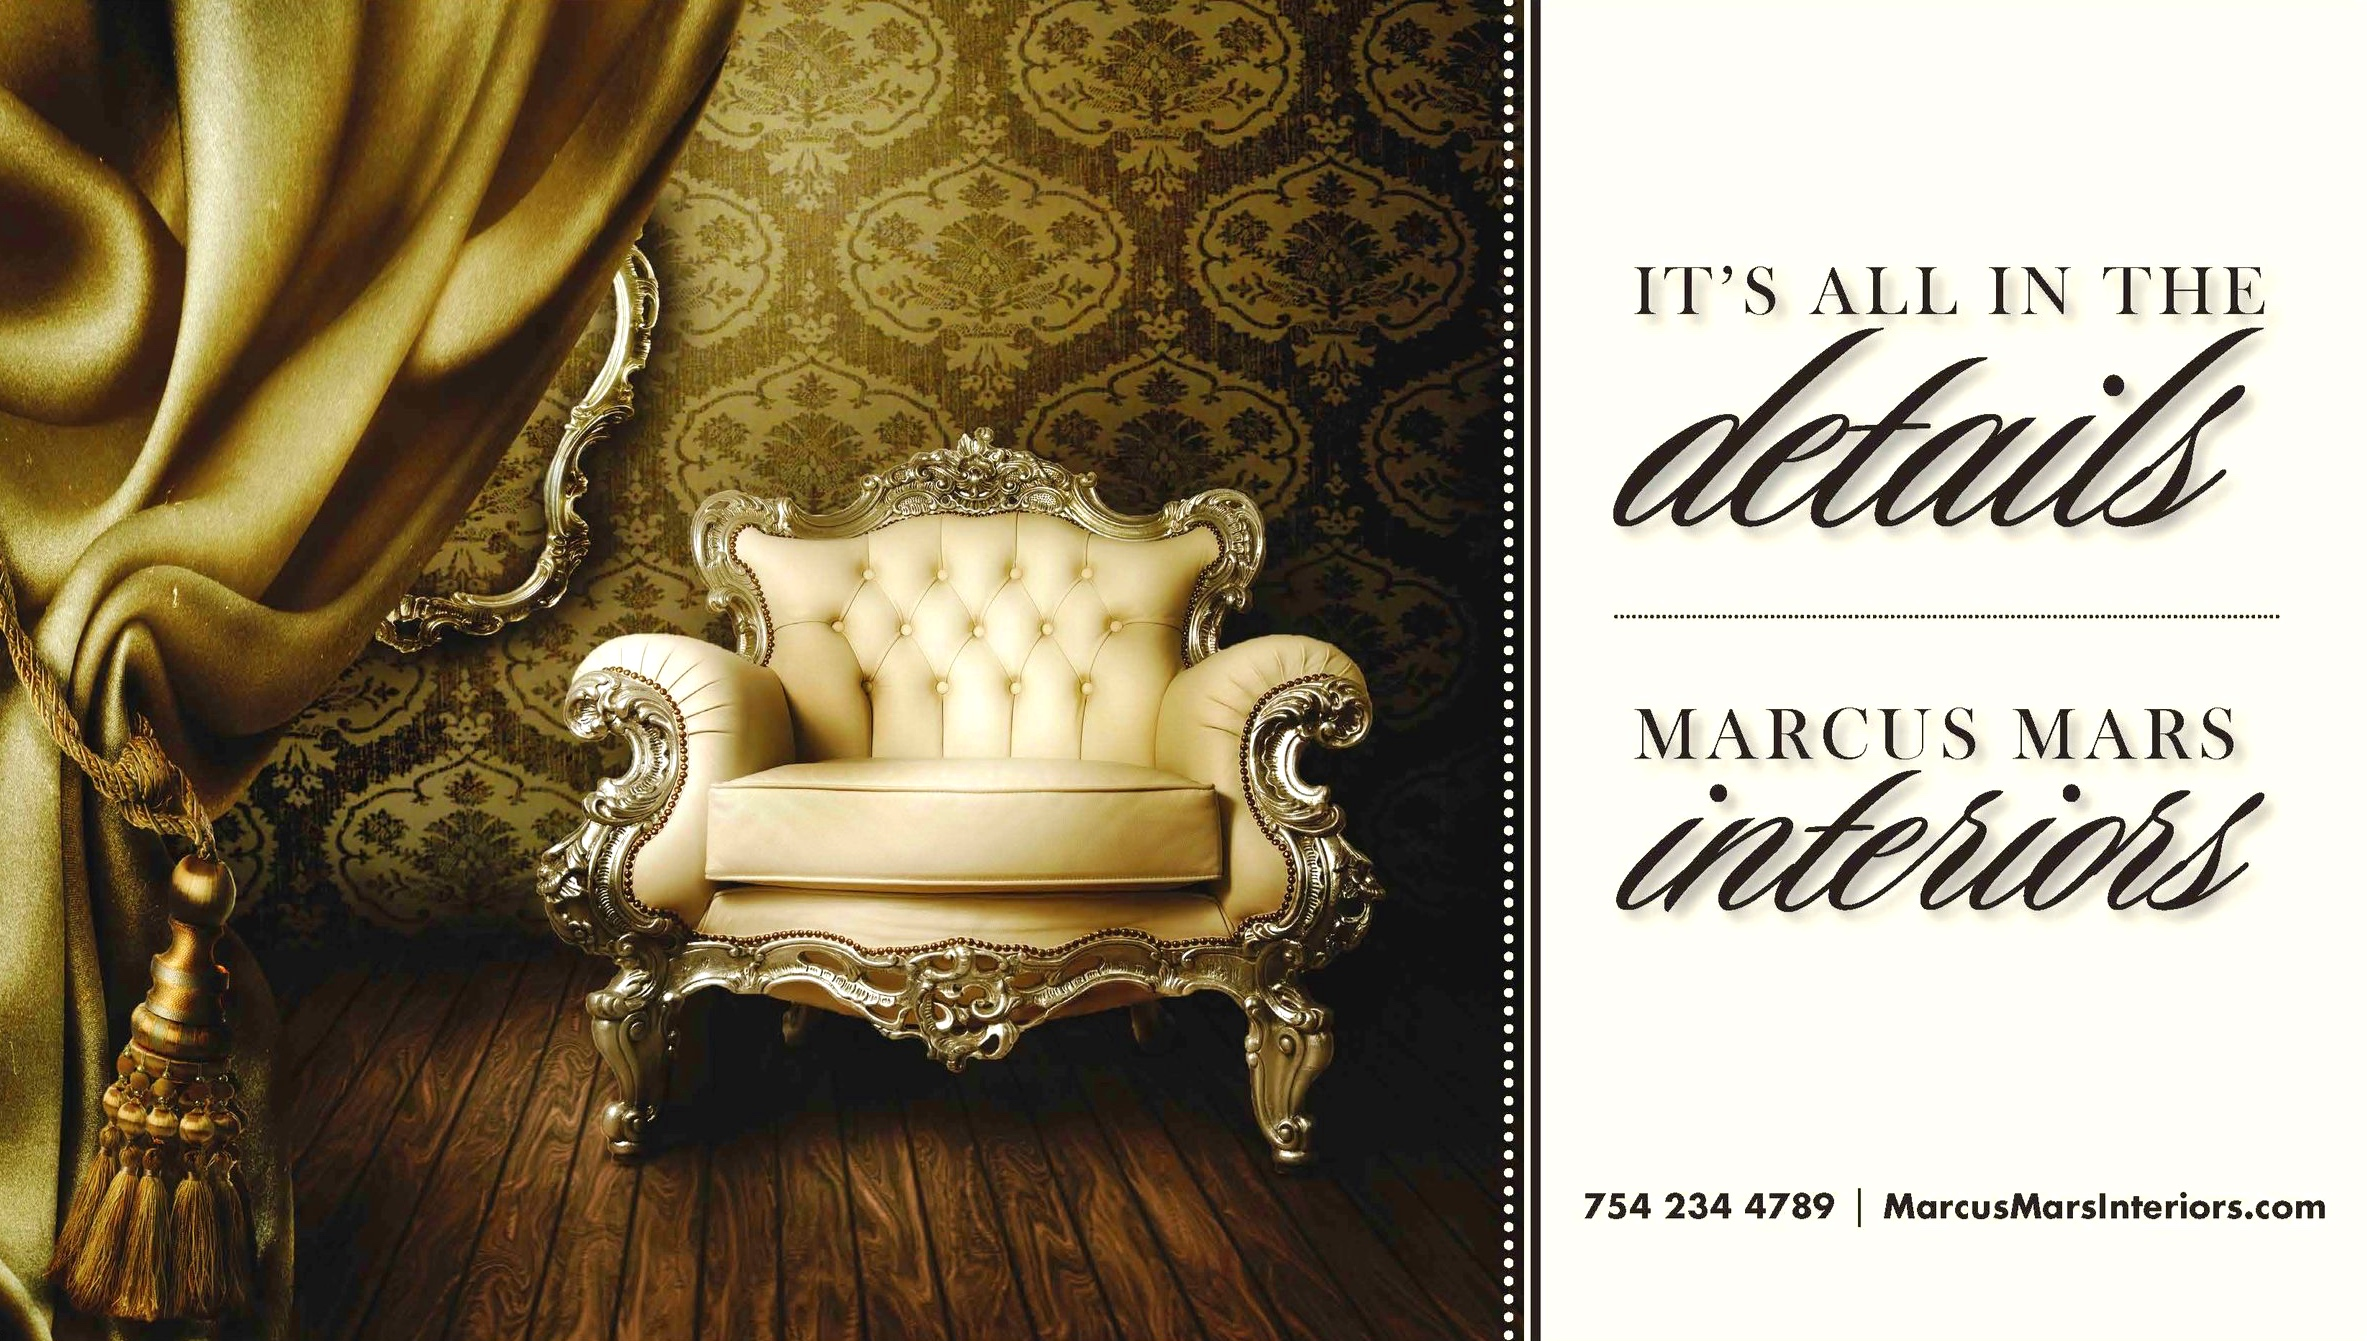 Marcus Mars Interiors - Its all in the details - Fort Lauderdale / Broward county interior designer